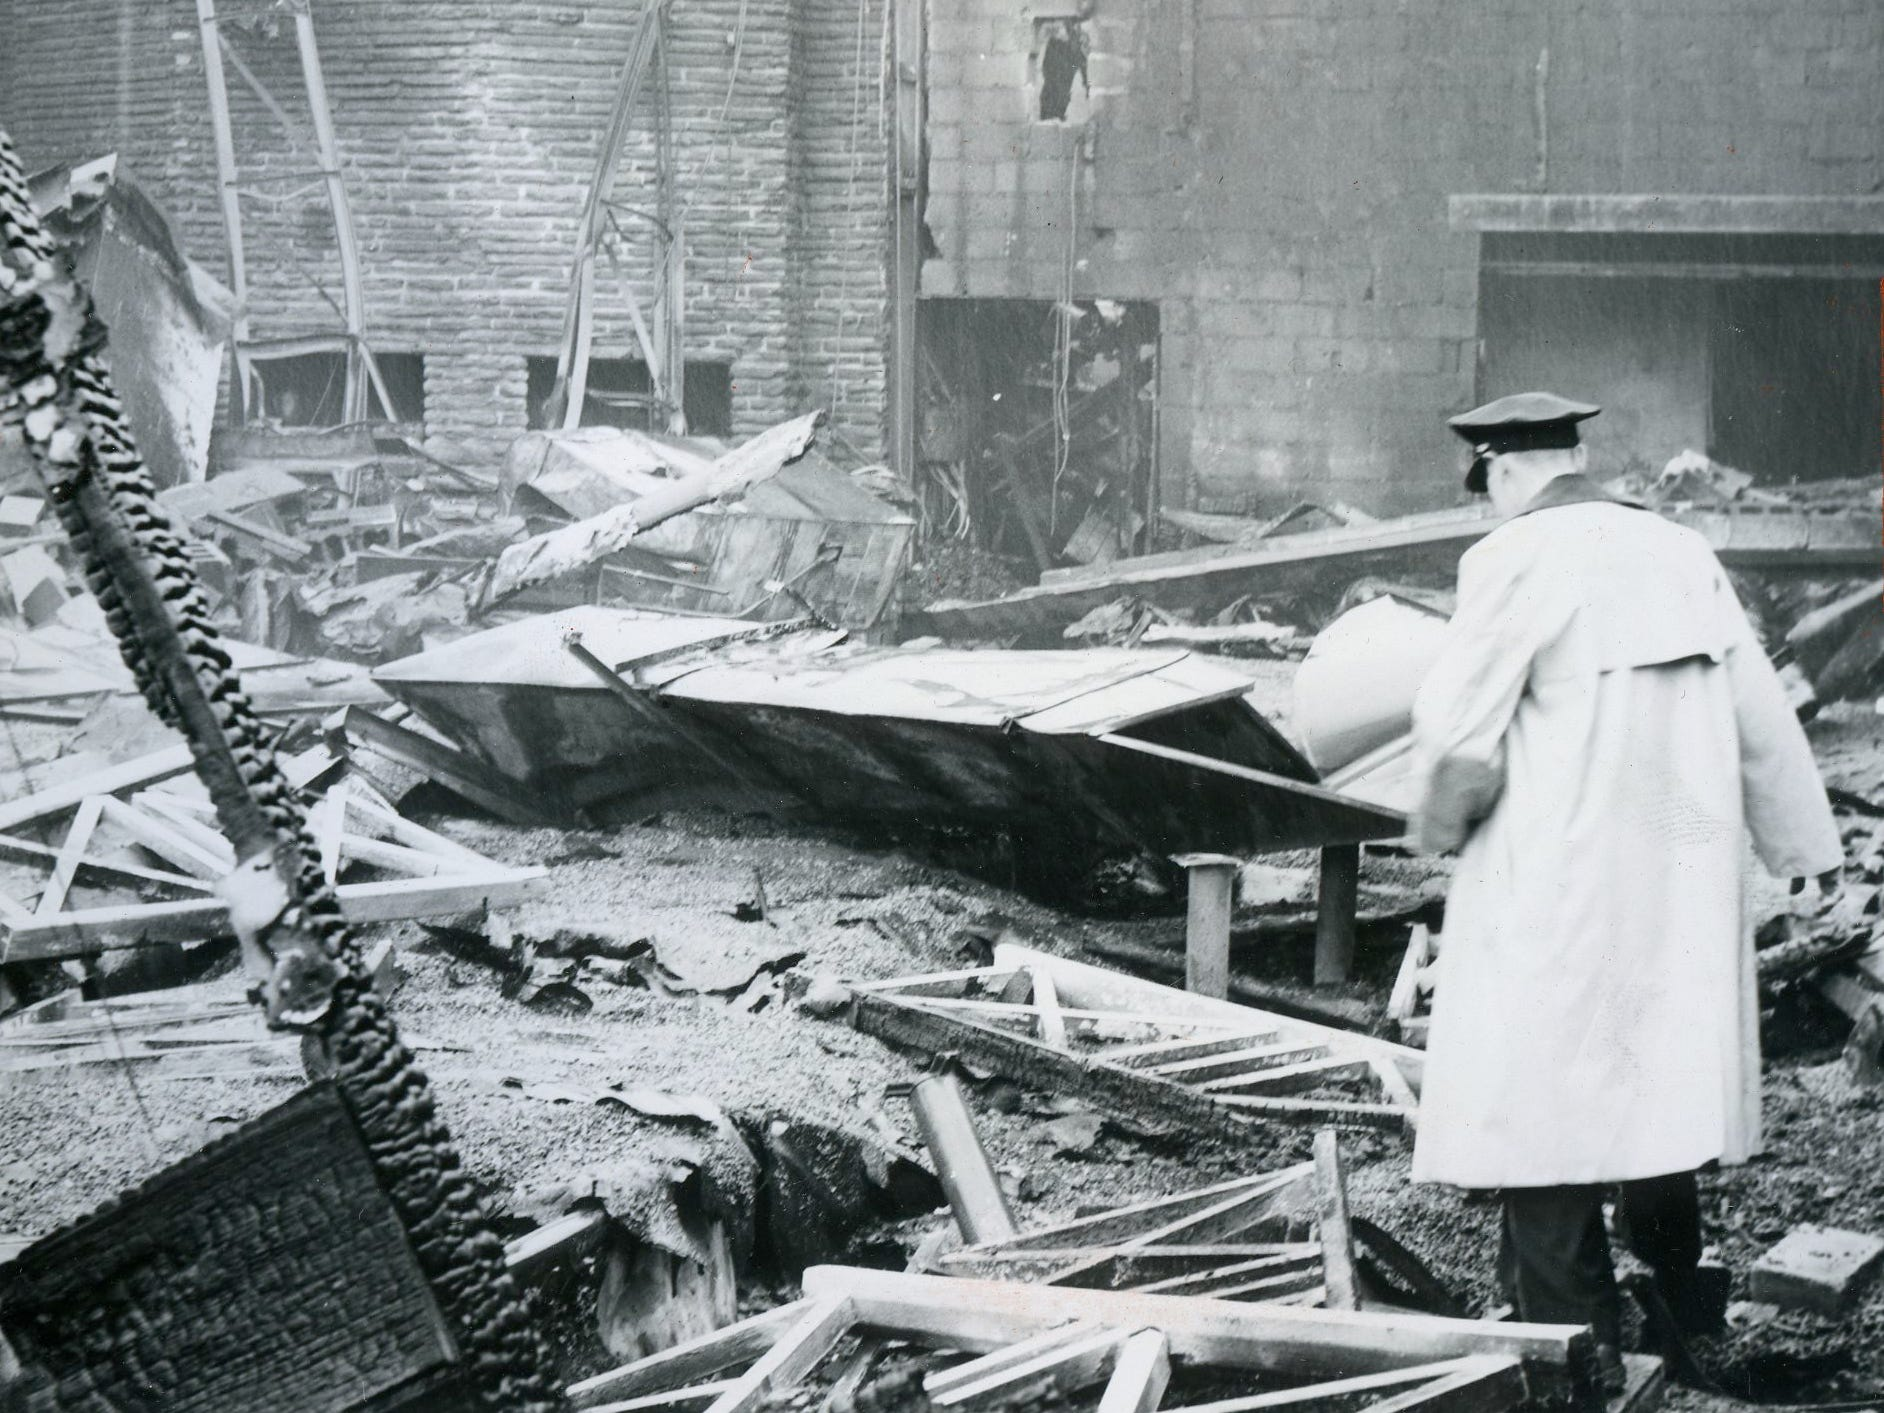 Charcoal ovens are seen in the background as a fire official surveys the aftermath of a fire that destroyed the original building of The Pub in Pennsauken in 1962. The Pub was later rebuilt on the same site.